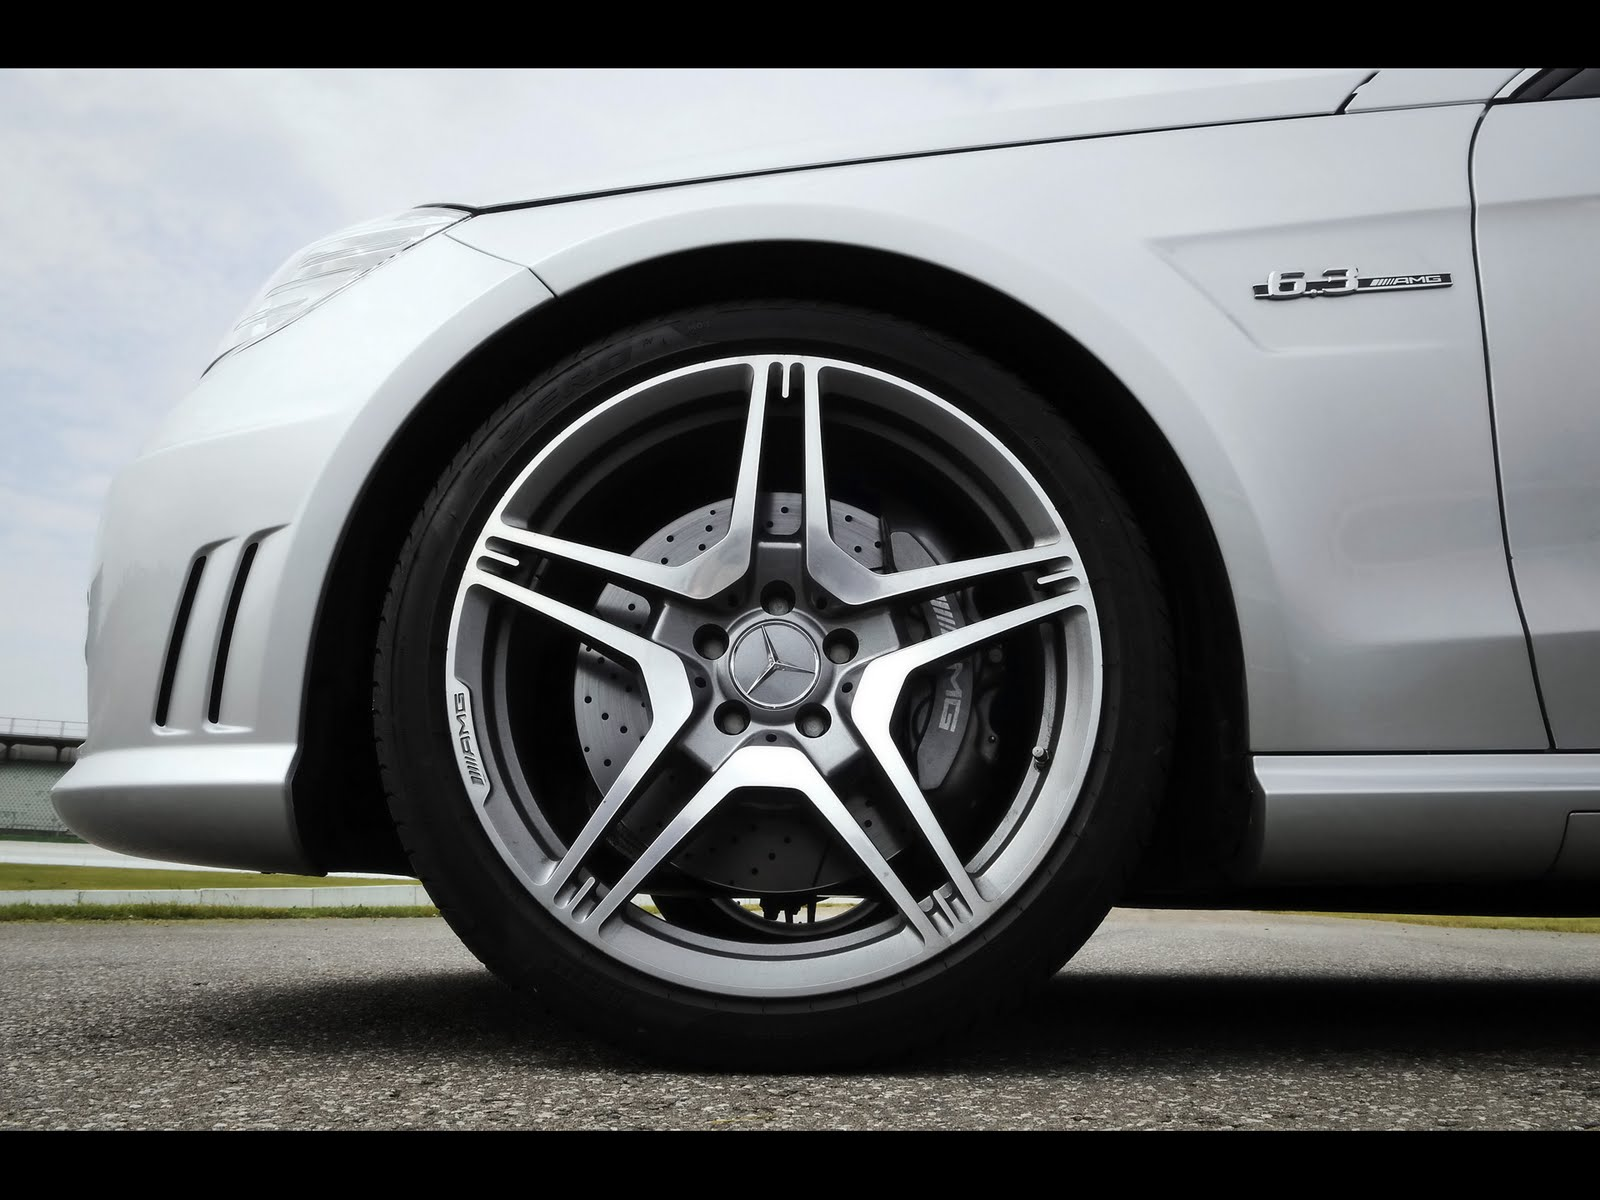 Superb AMG Wheels Look Cool And The Rest Of The Car Very Visible. If I Say, If You  Think That Considering How Often The Car Is Considered And Five Spoke Wheels,  ...